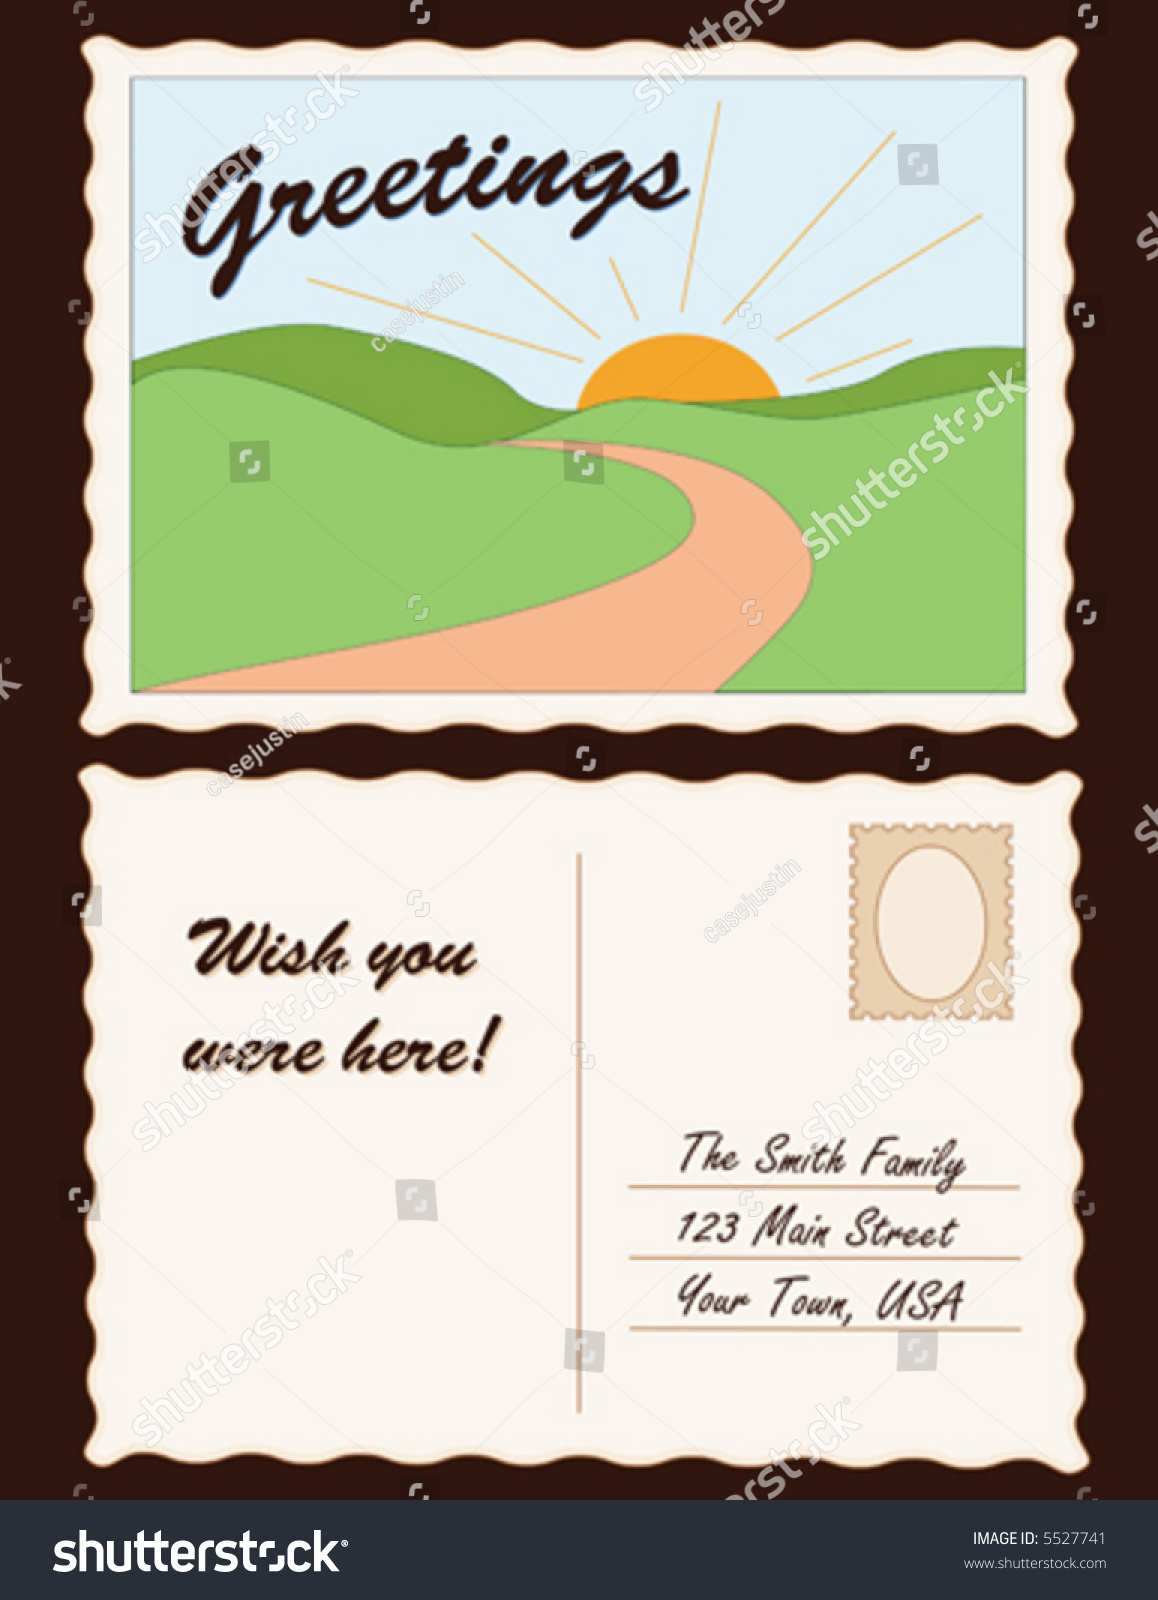 POSTCARD Greetings Travel Landscape Copy Space To Customize With Your Own Text And